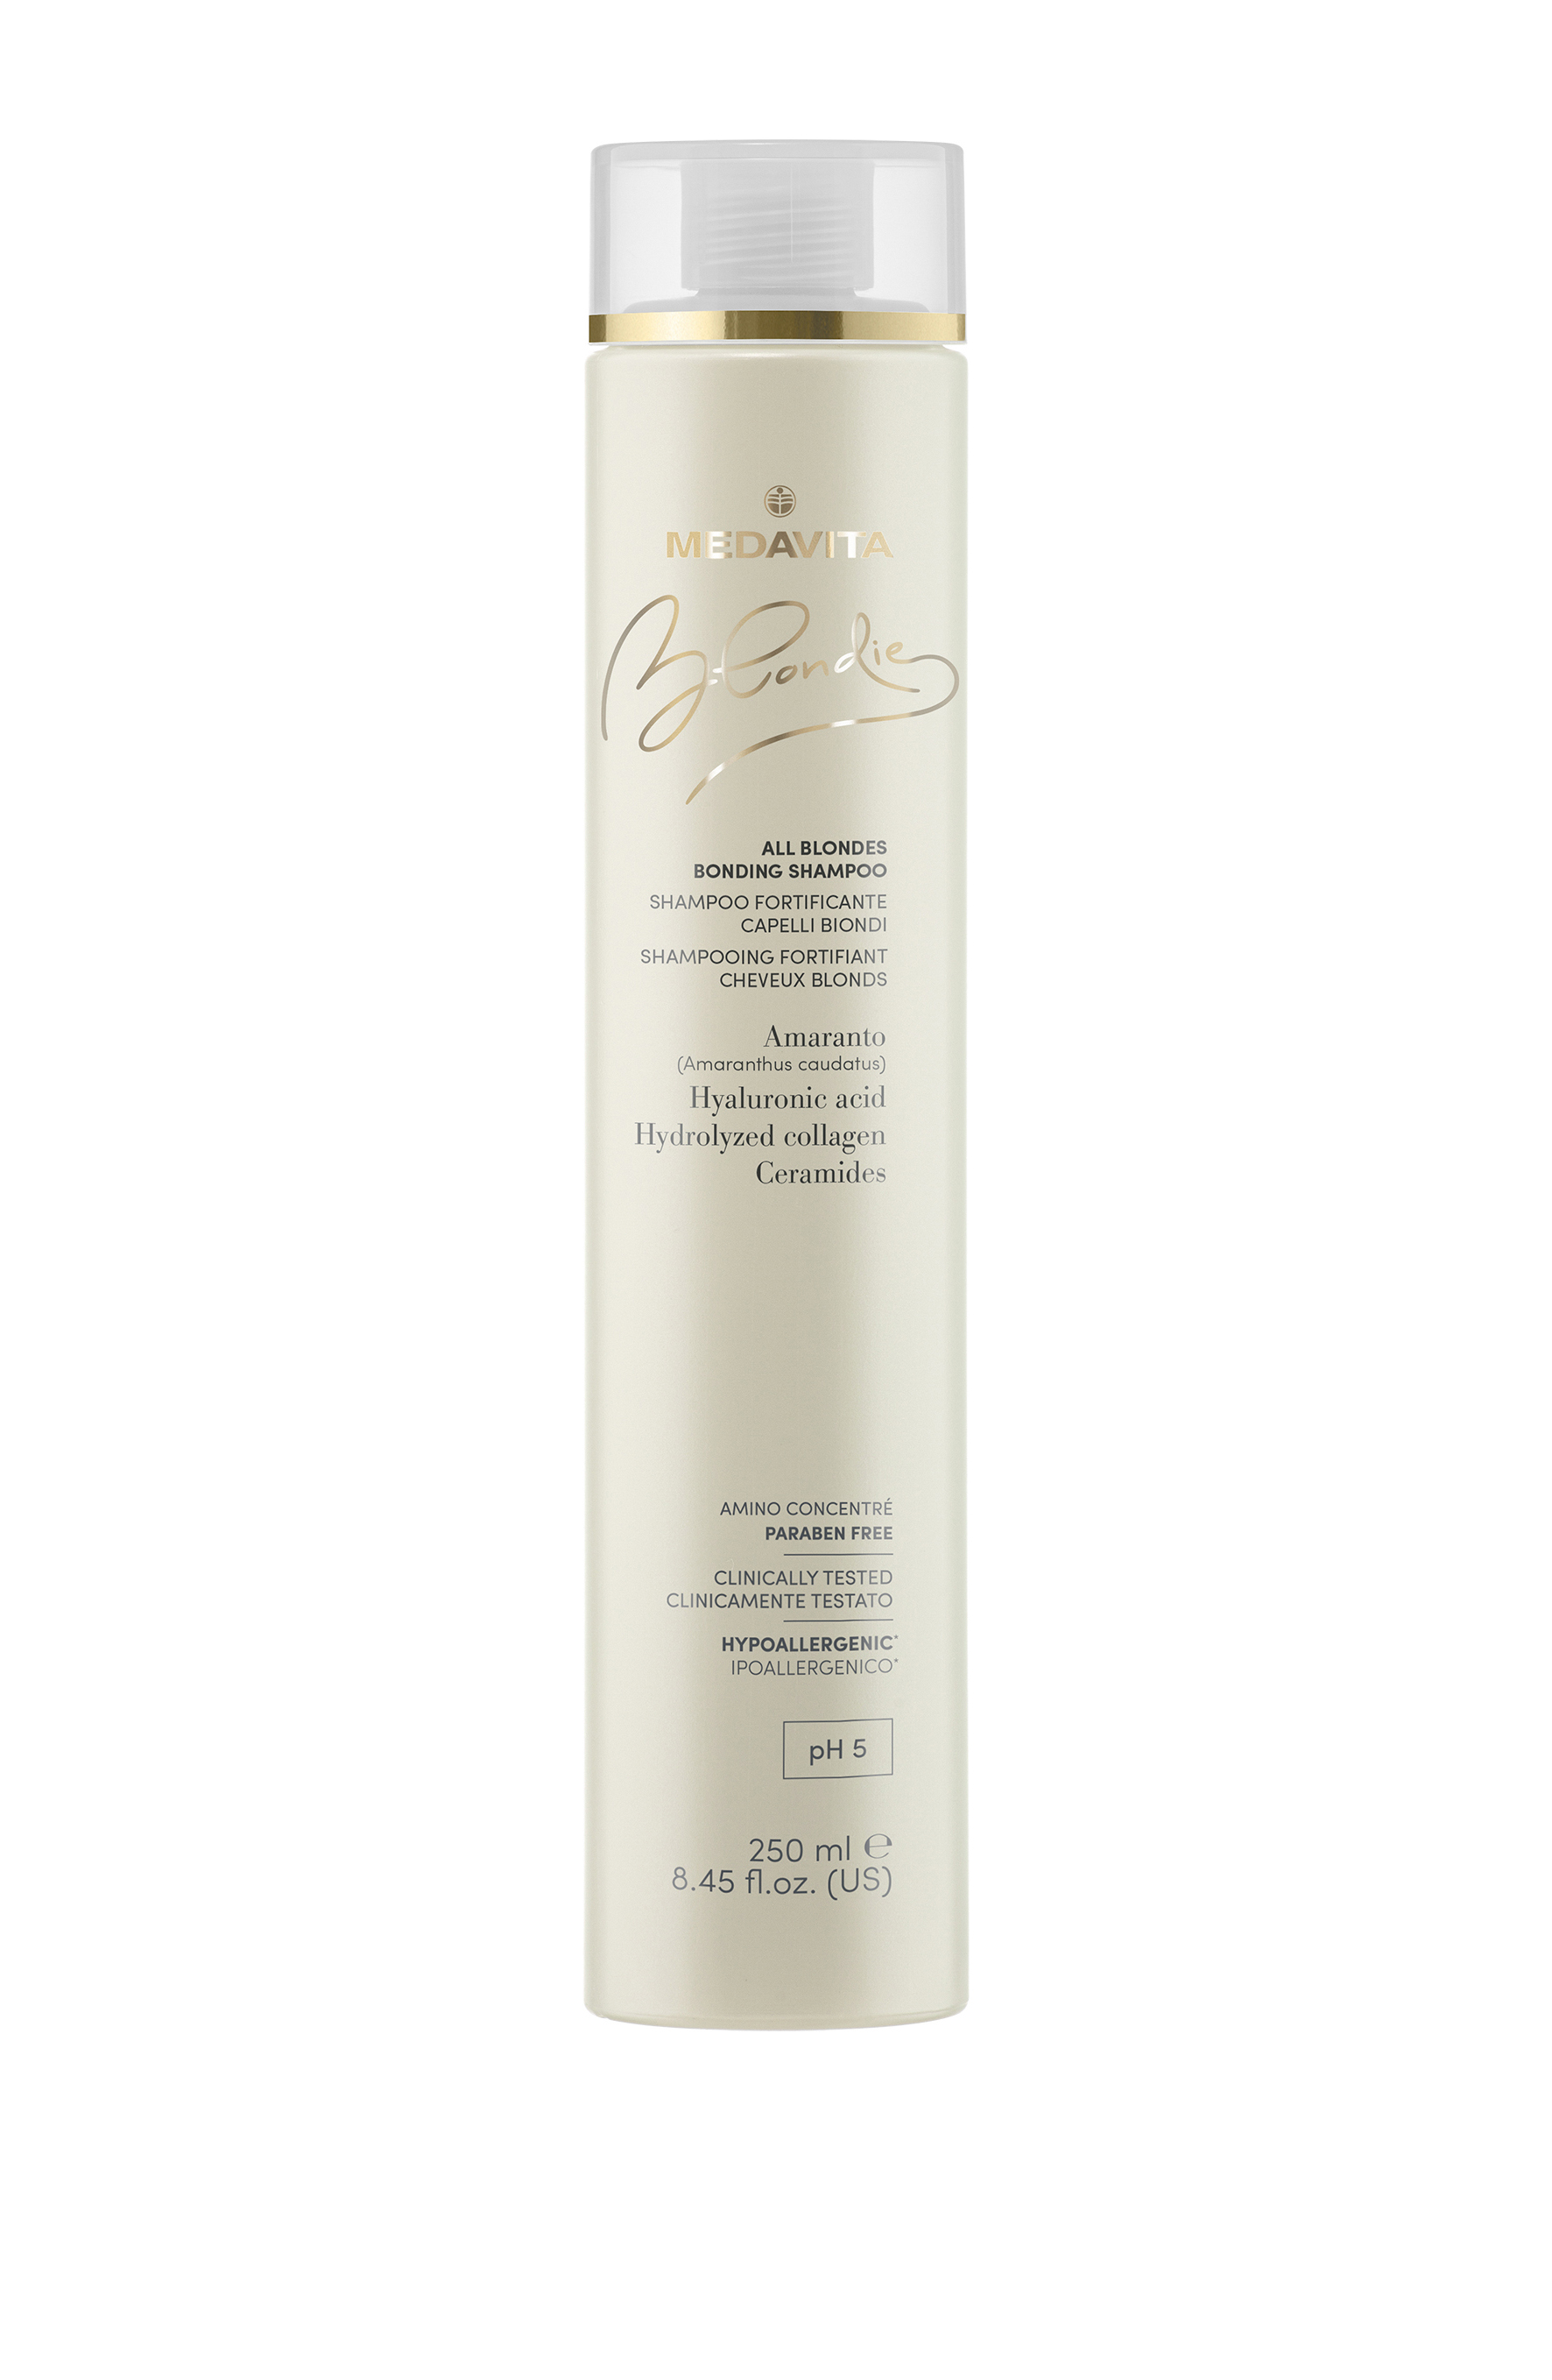 Blondie flacone All Blondes Bonding sh 250ml